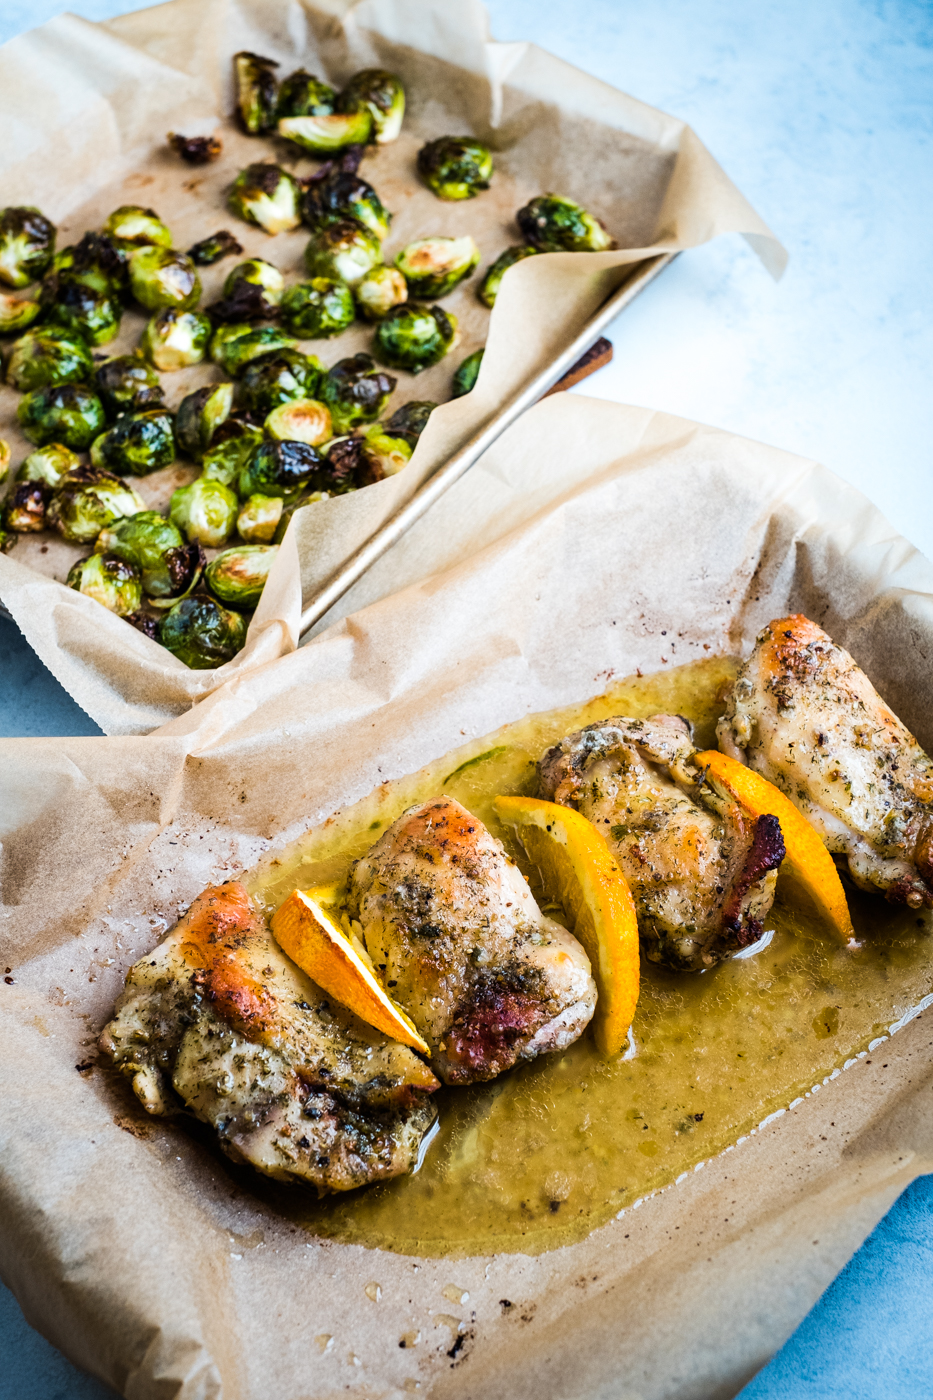 Orange Chicken with Brussels Sprouts